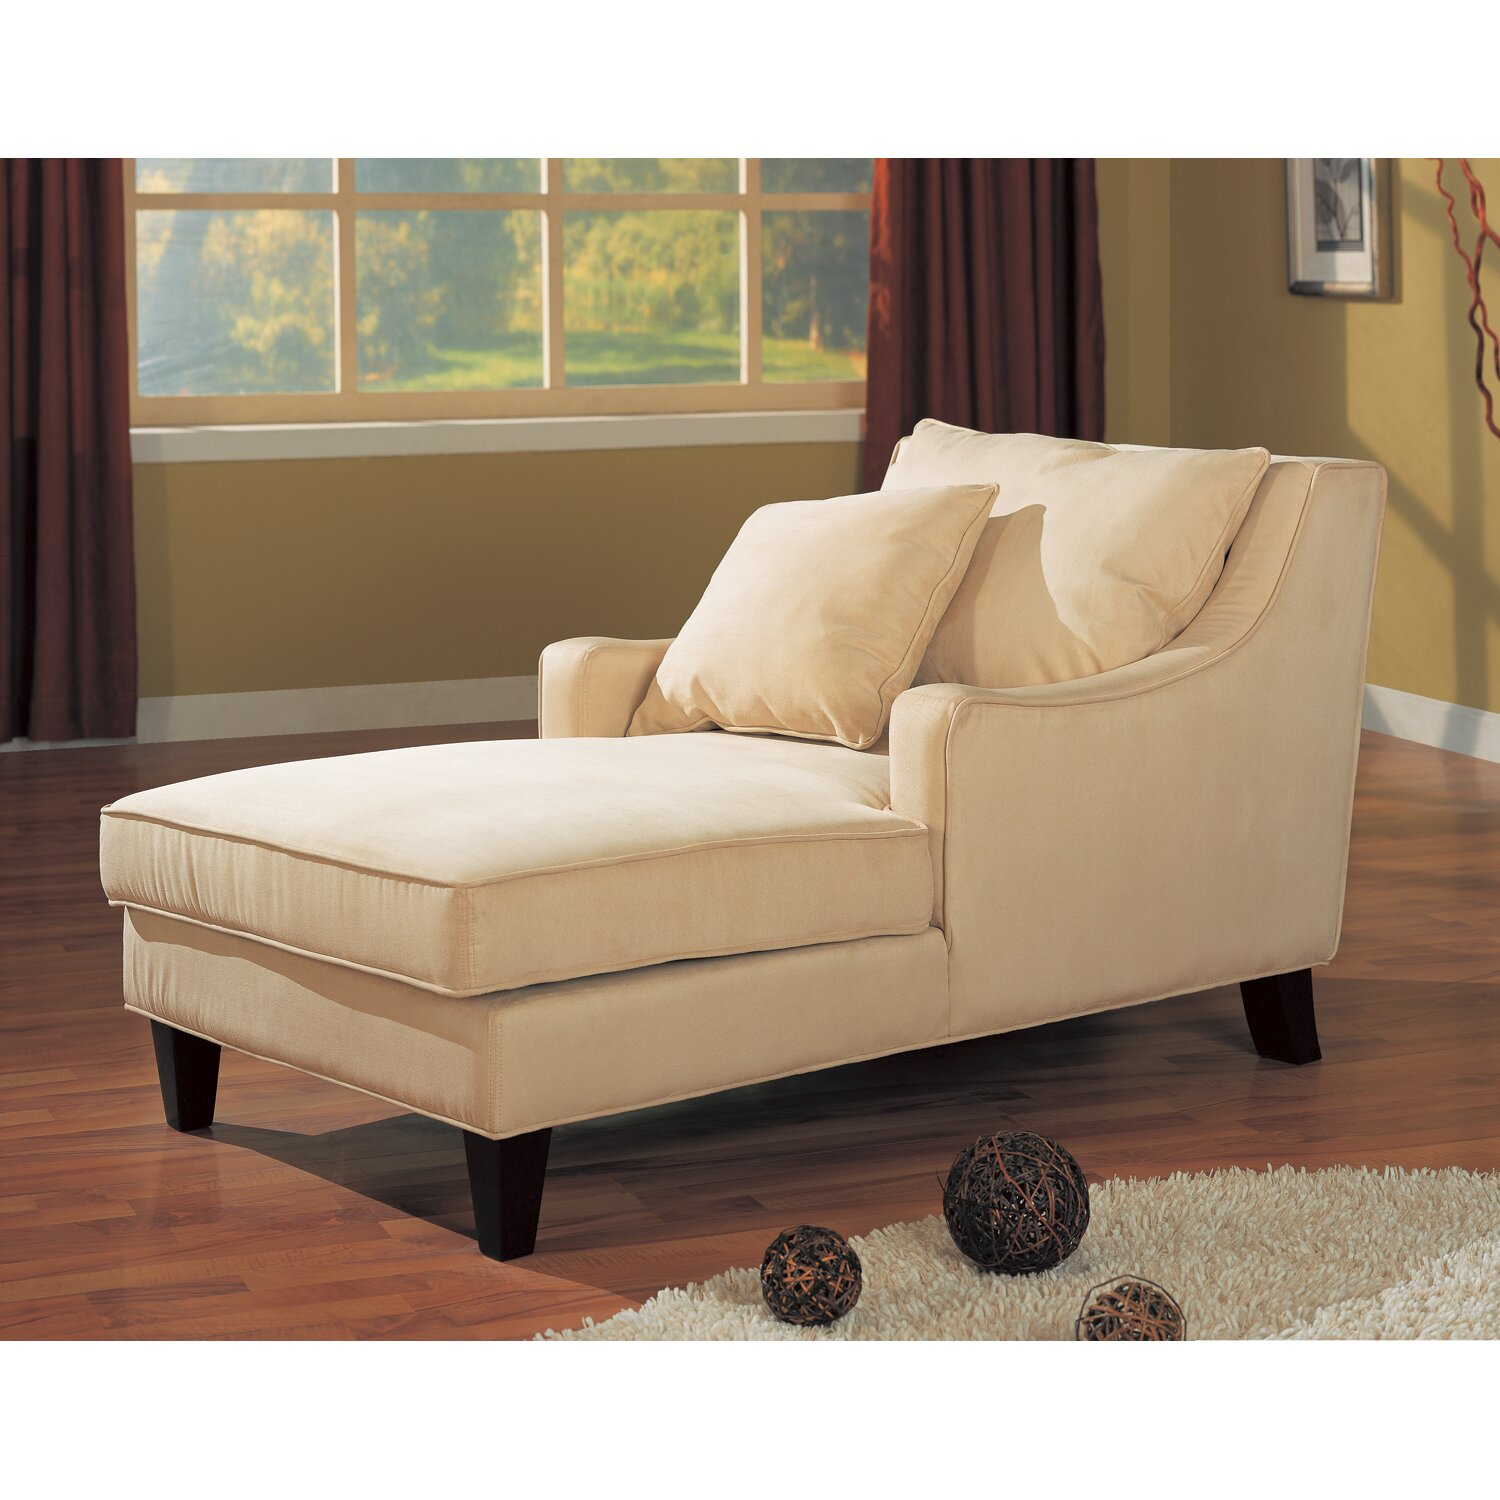 Bernard Chaise Lounge Of Wildon Home Sandy Chaise Reviews